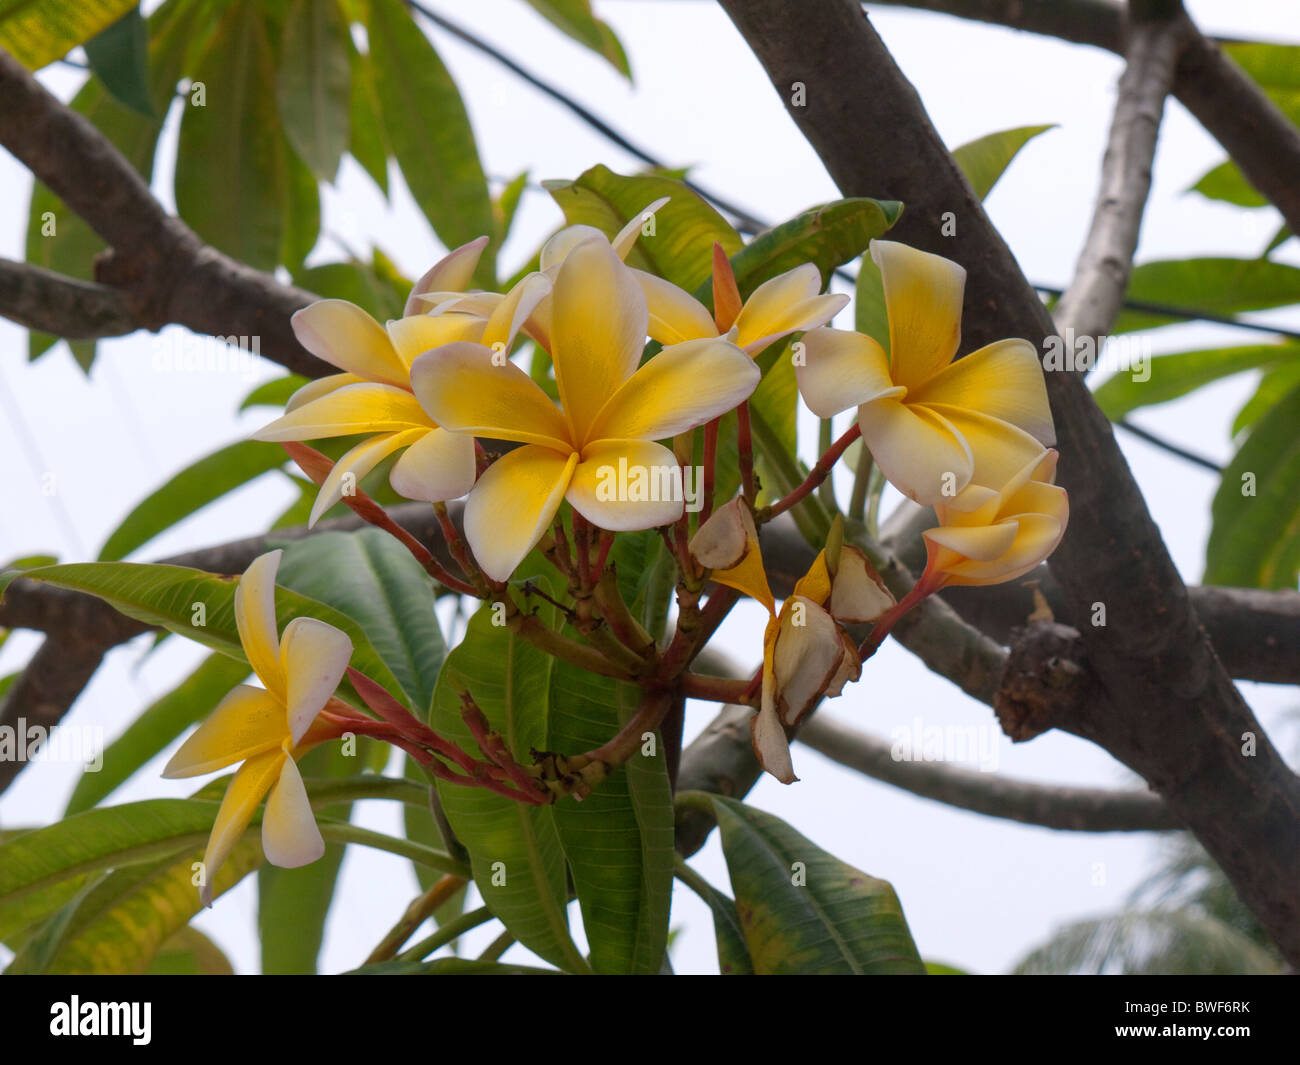 Waxy yellow tree flower in key west in the florida keys in the state waxy yellow tree flower in key west in the florida keys in the state of florida usa mightylinksfo Image collections